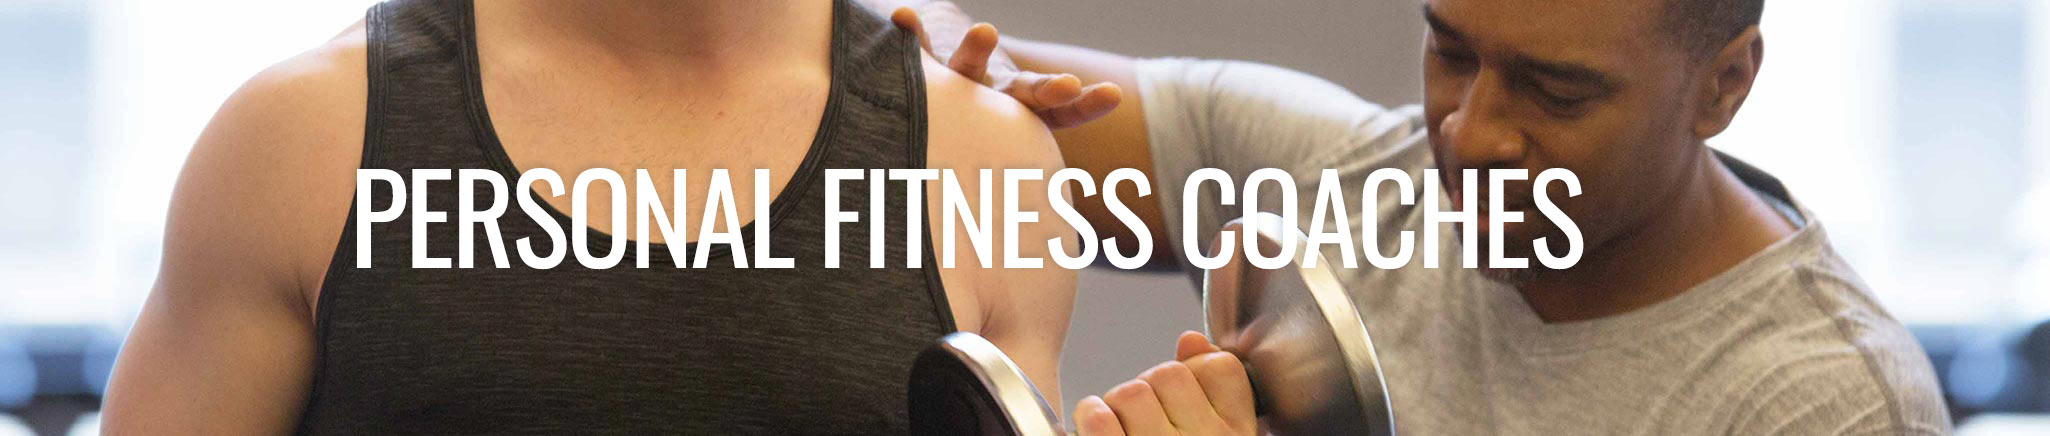 Personal Fitness Coaching at ZUM Fitness in downtown Seattle.